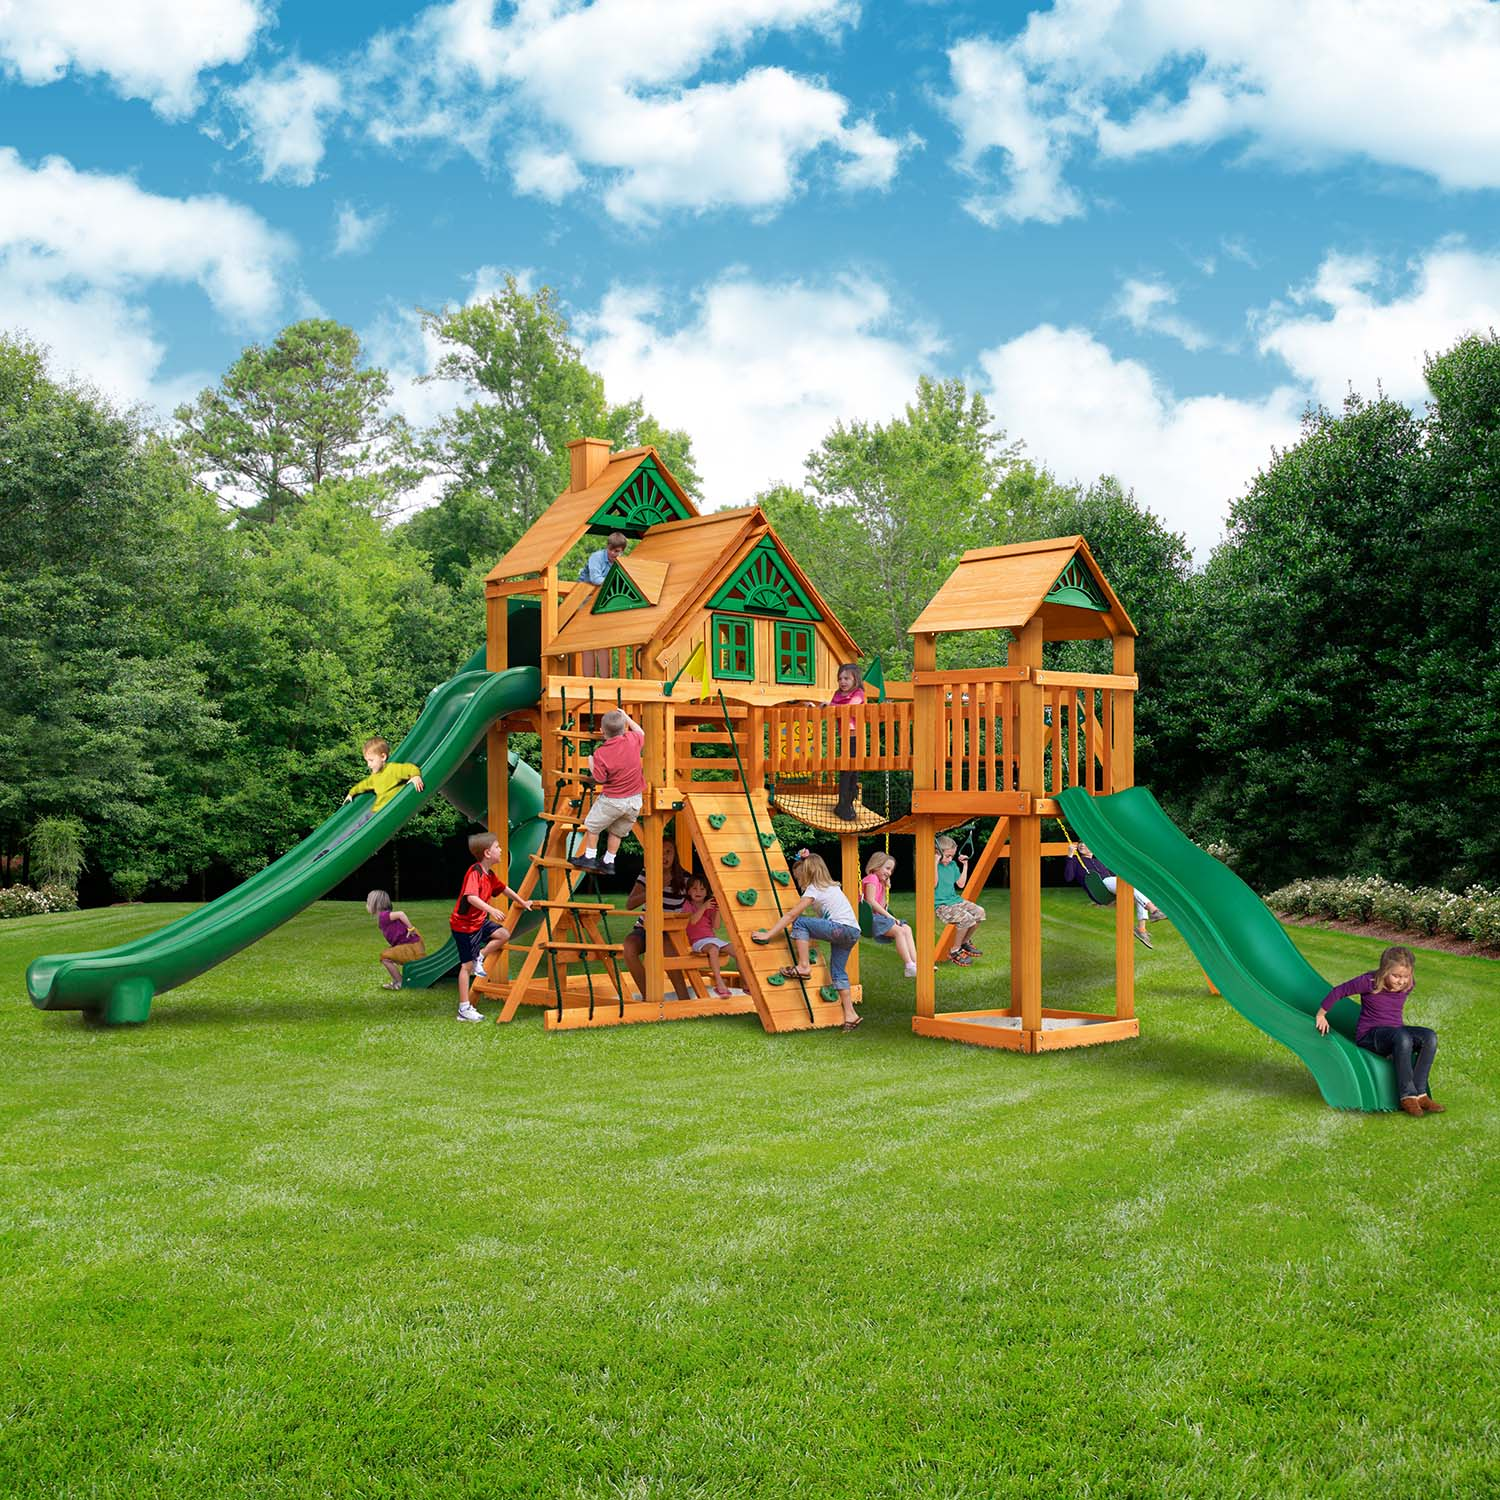 Gorilla Playsets Treasure Trove Ii Treehouse Wooden Swing Set Nj